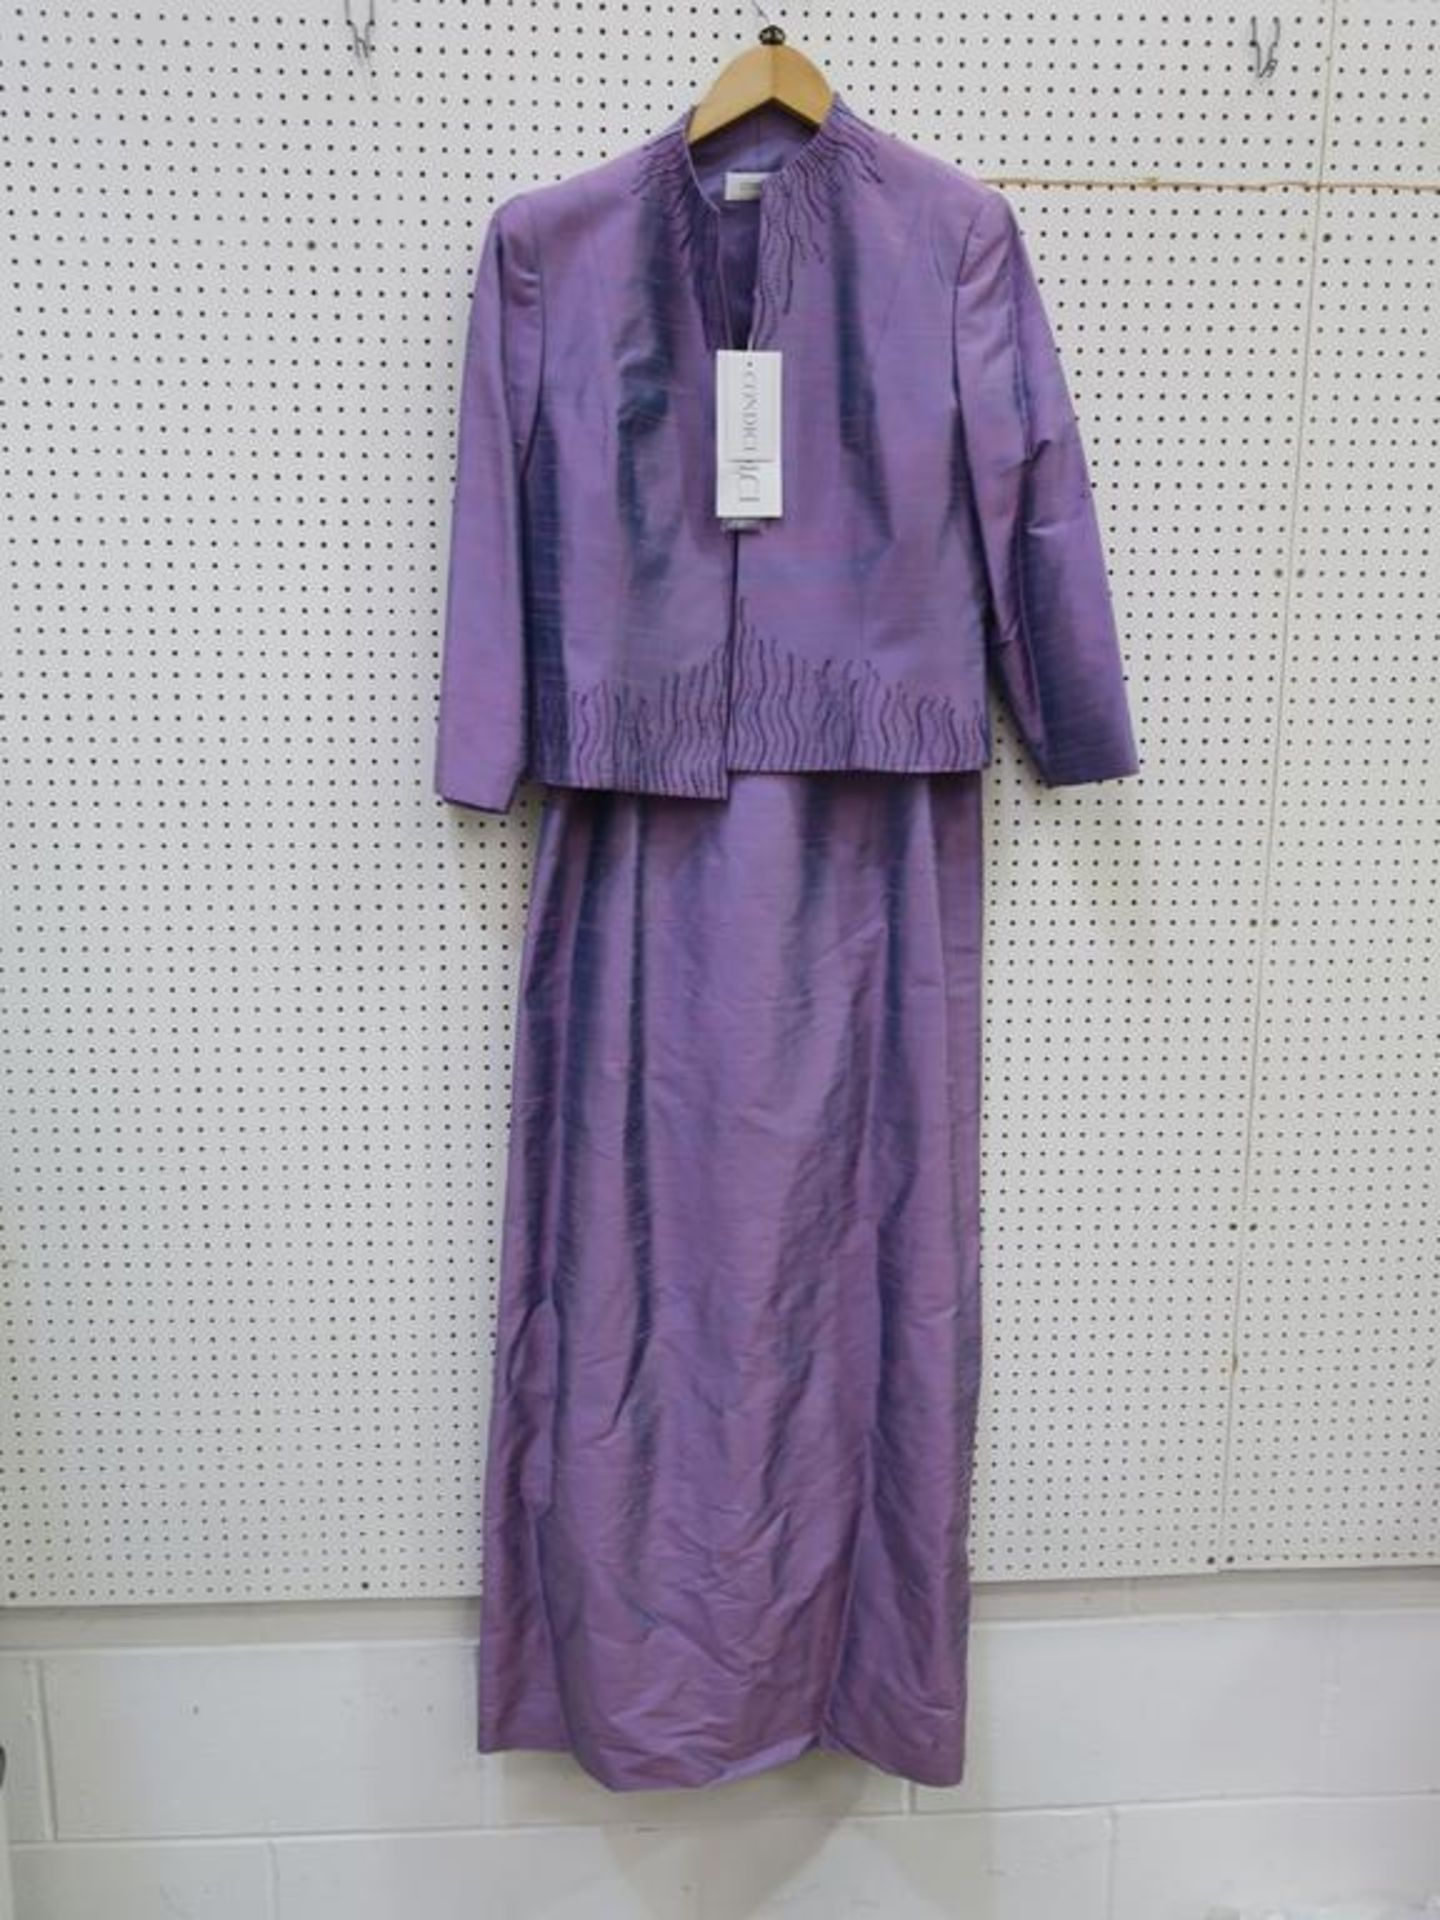 Lot 8034 - * Two Ladies Garments, A Medici Size 14 (RRP £425) and the other by Condici Size 14 (RRP £425)